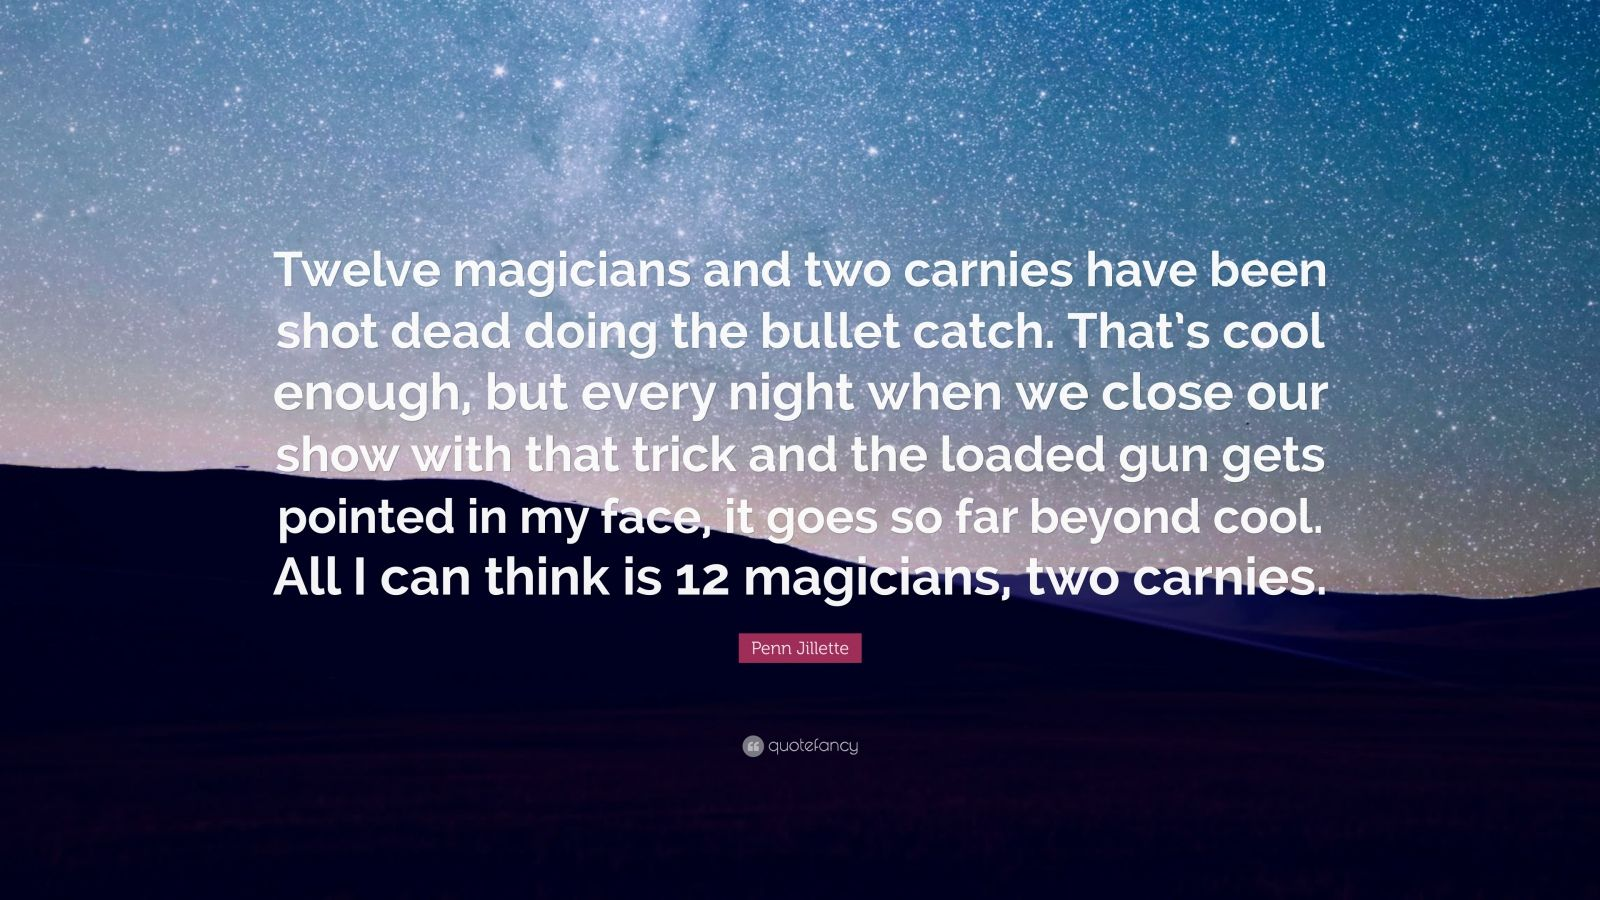 """Penn Jillette Quote: """"Twelve magicians and two carnies have been shot dead doing the bullet catch. That's cool enough, but every night when we close our show with that trick and the loaded gun gets pointed in my face, it goes so far beyond cool. All I can think is 12 magicians, two carnies."""""""